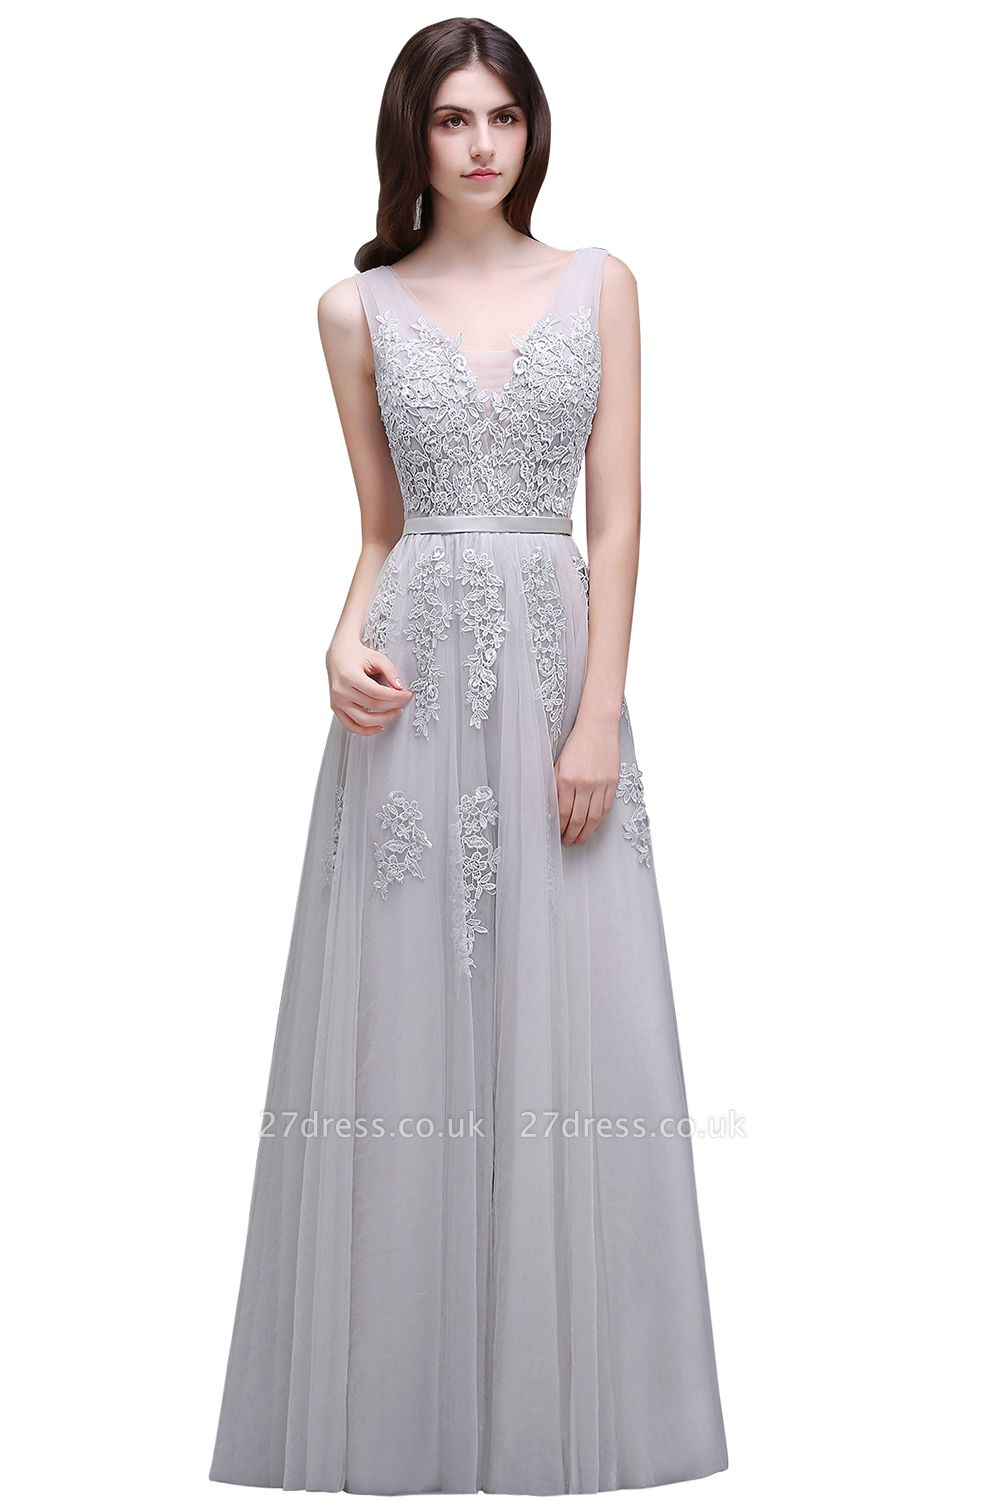 ADDYSON   A-line Floor-length Tulle Bridesmaid Dress with Appliques